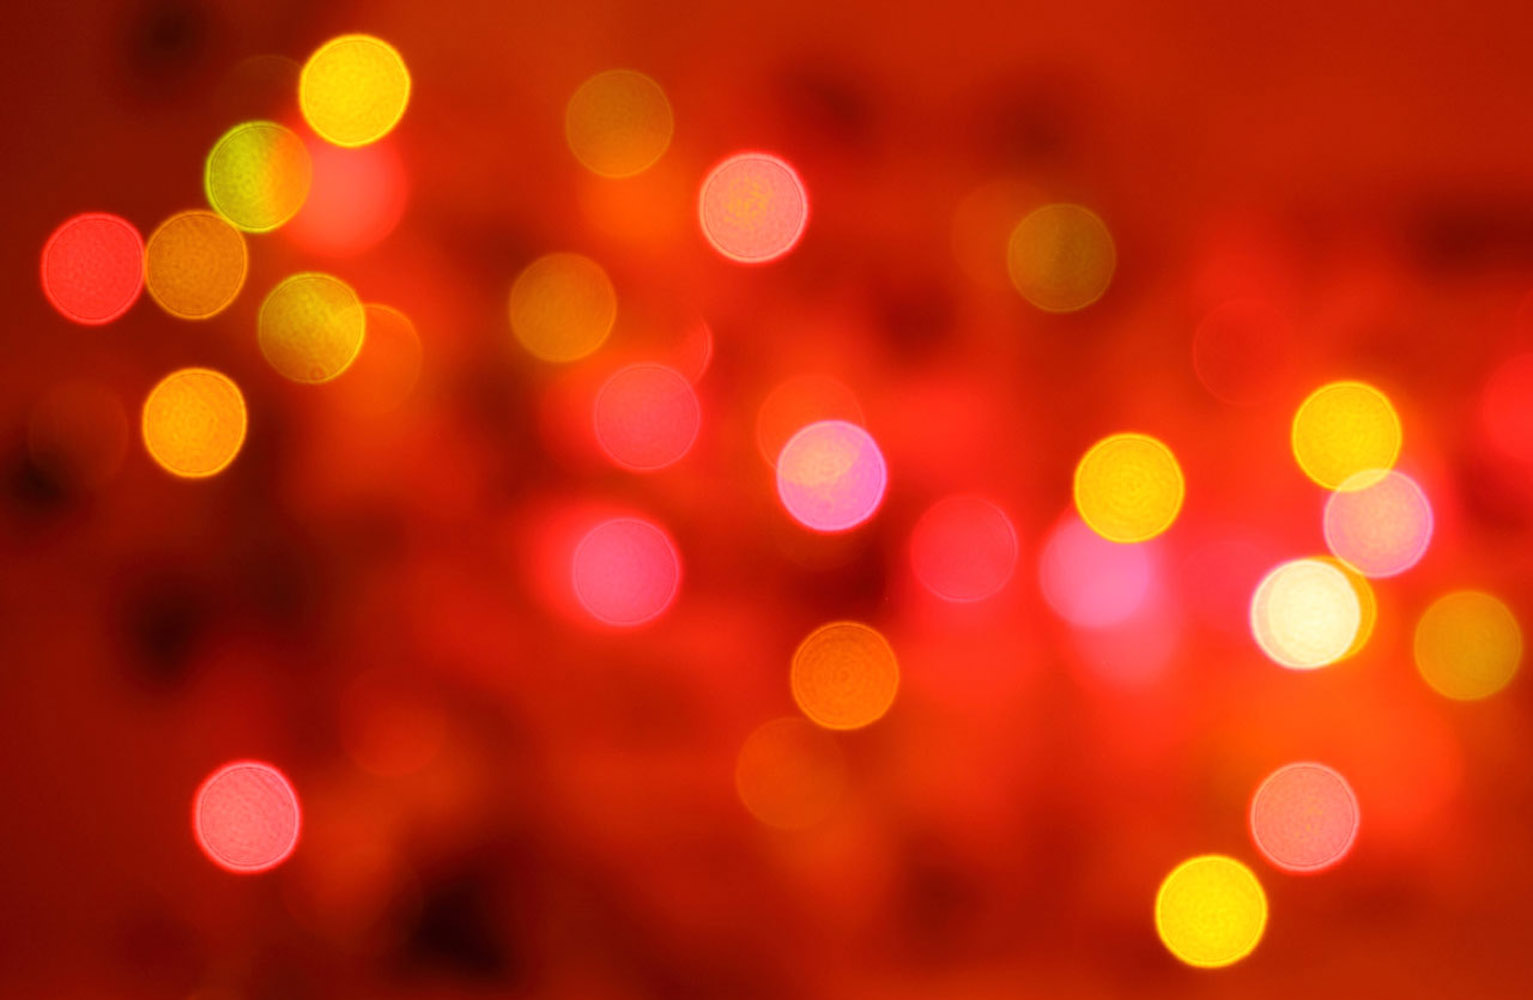 Red Christmas Background with Bokeh     Free Download xRWDzgN2